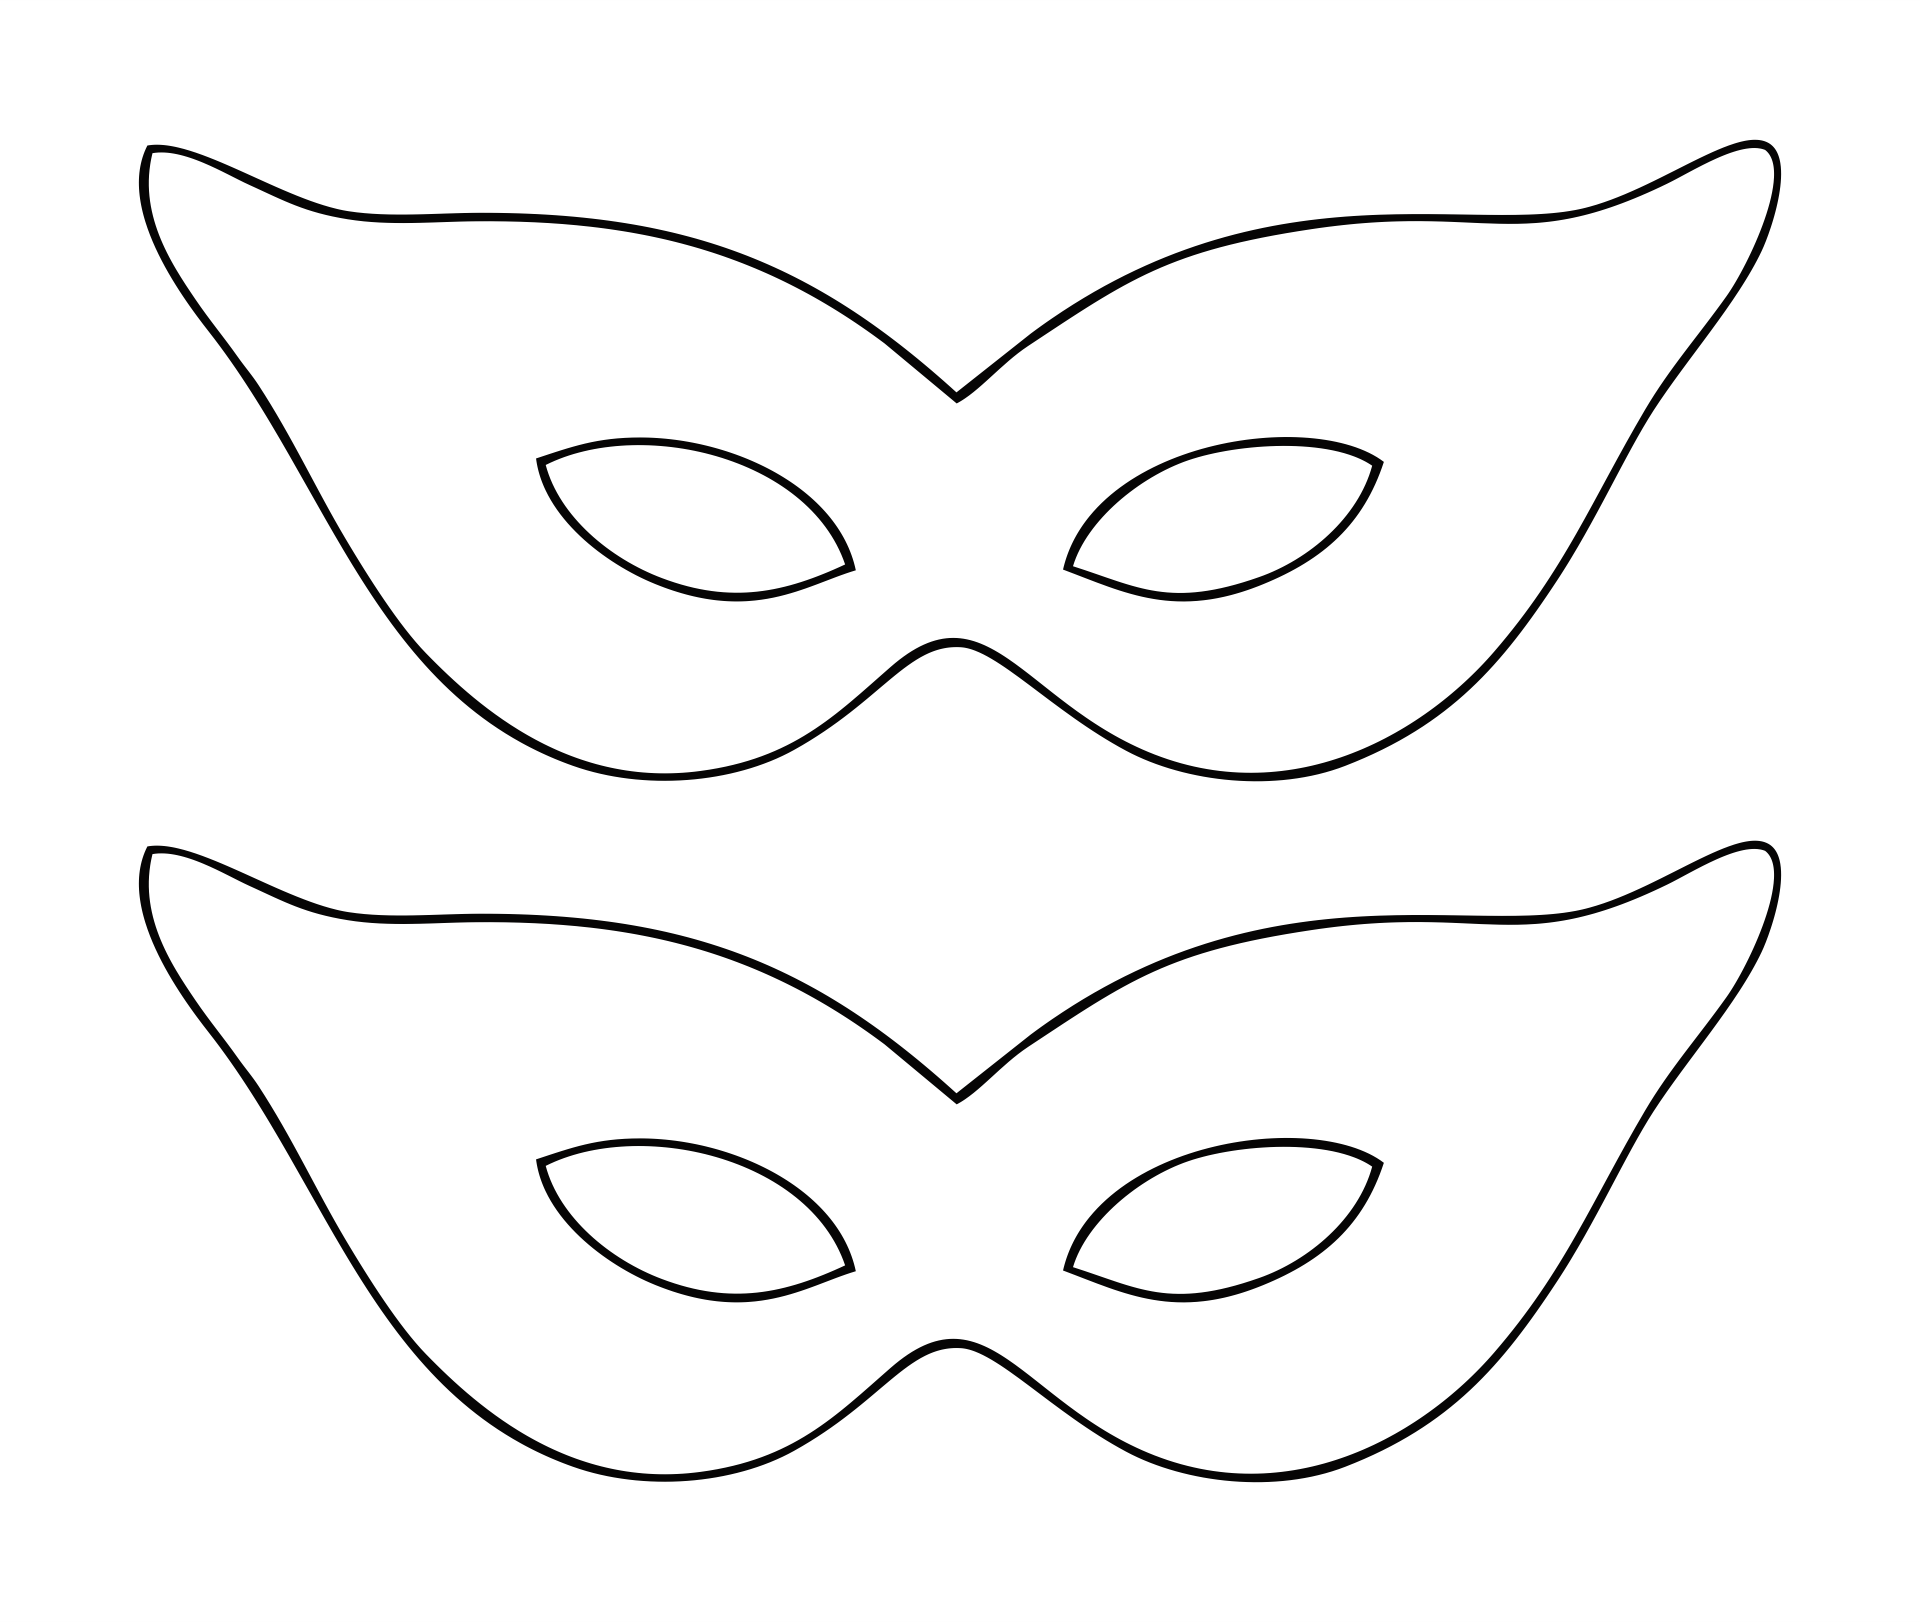 coloring hulk mask 9 best images of printable superhero mask cutouts super hulk mask coloring